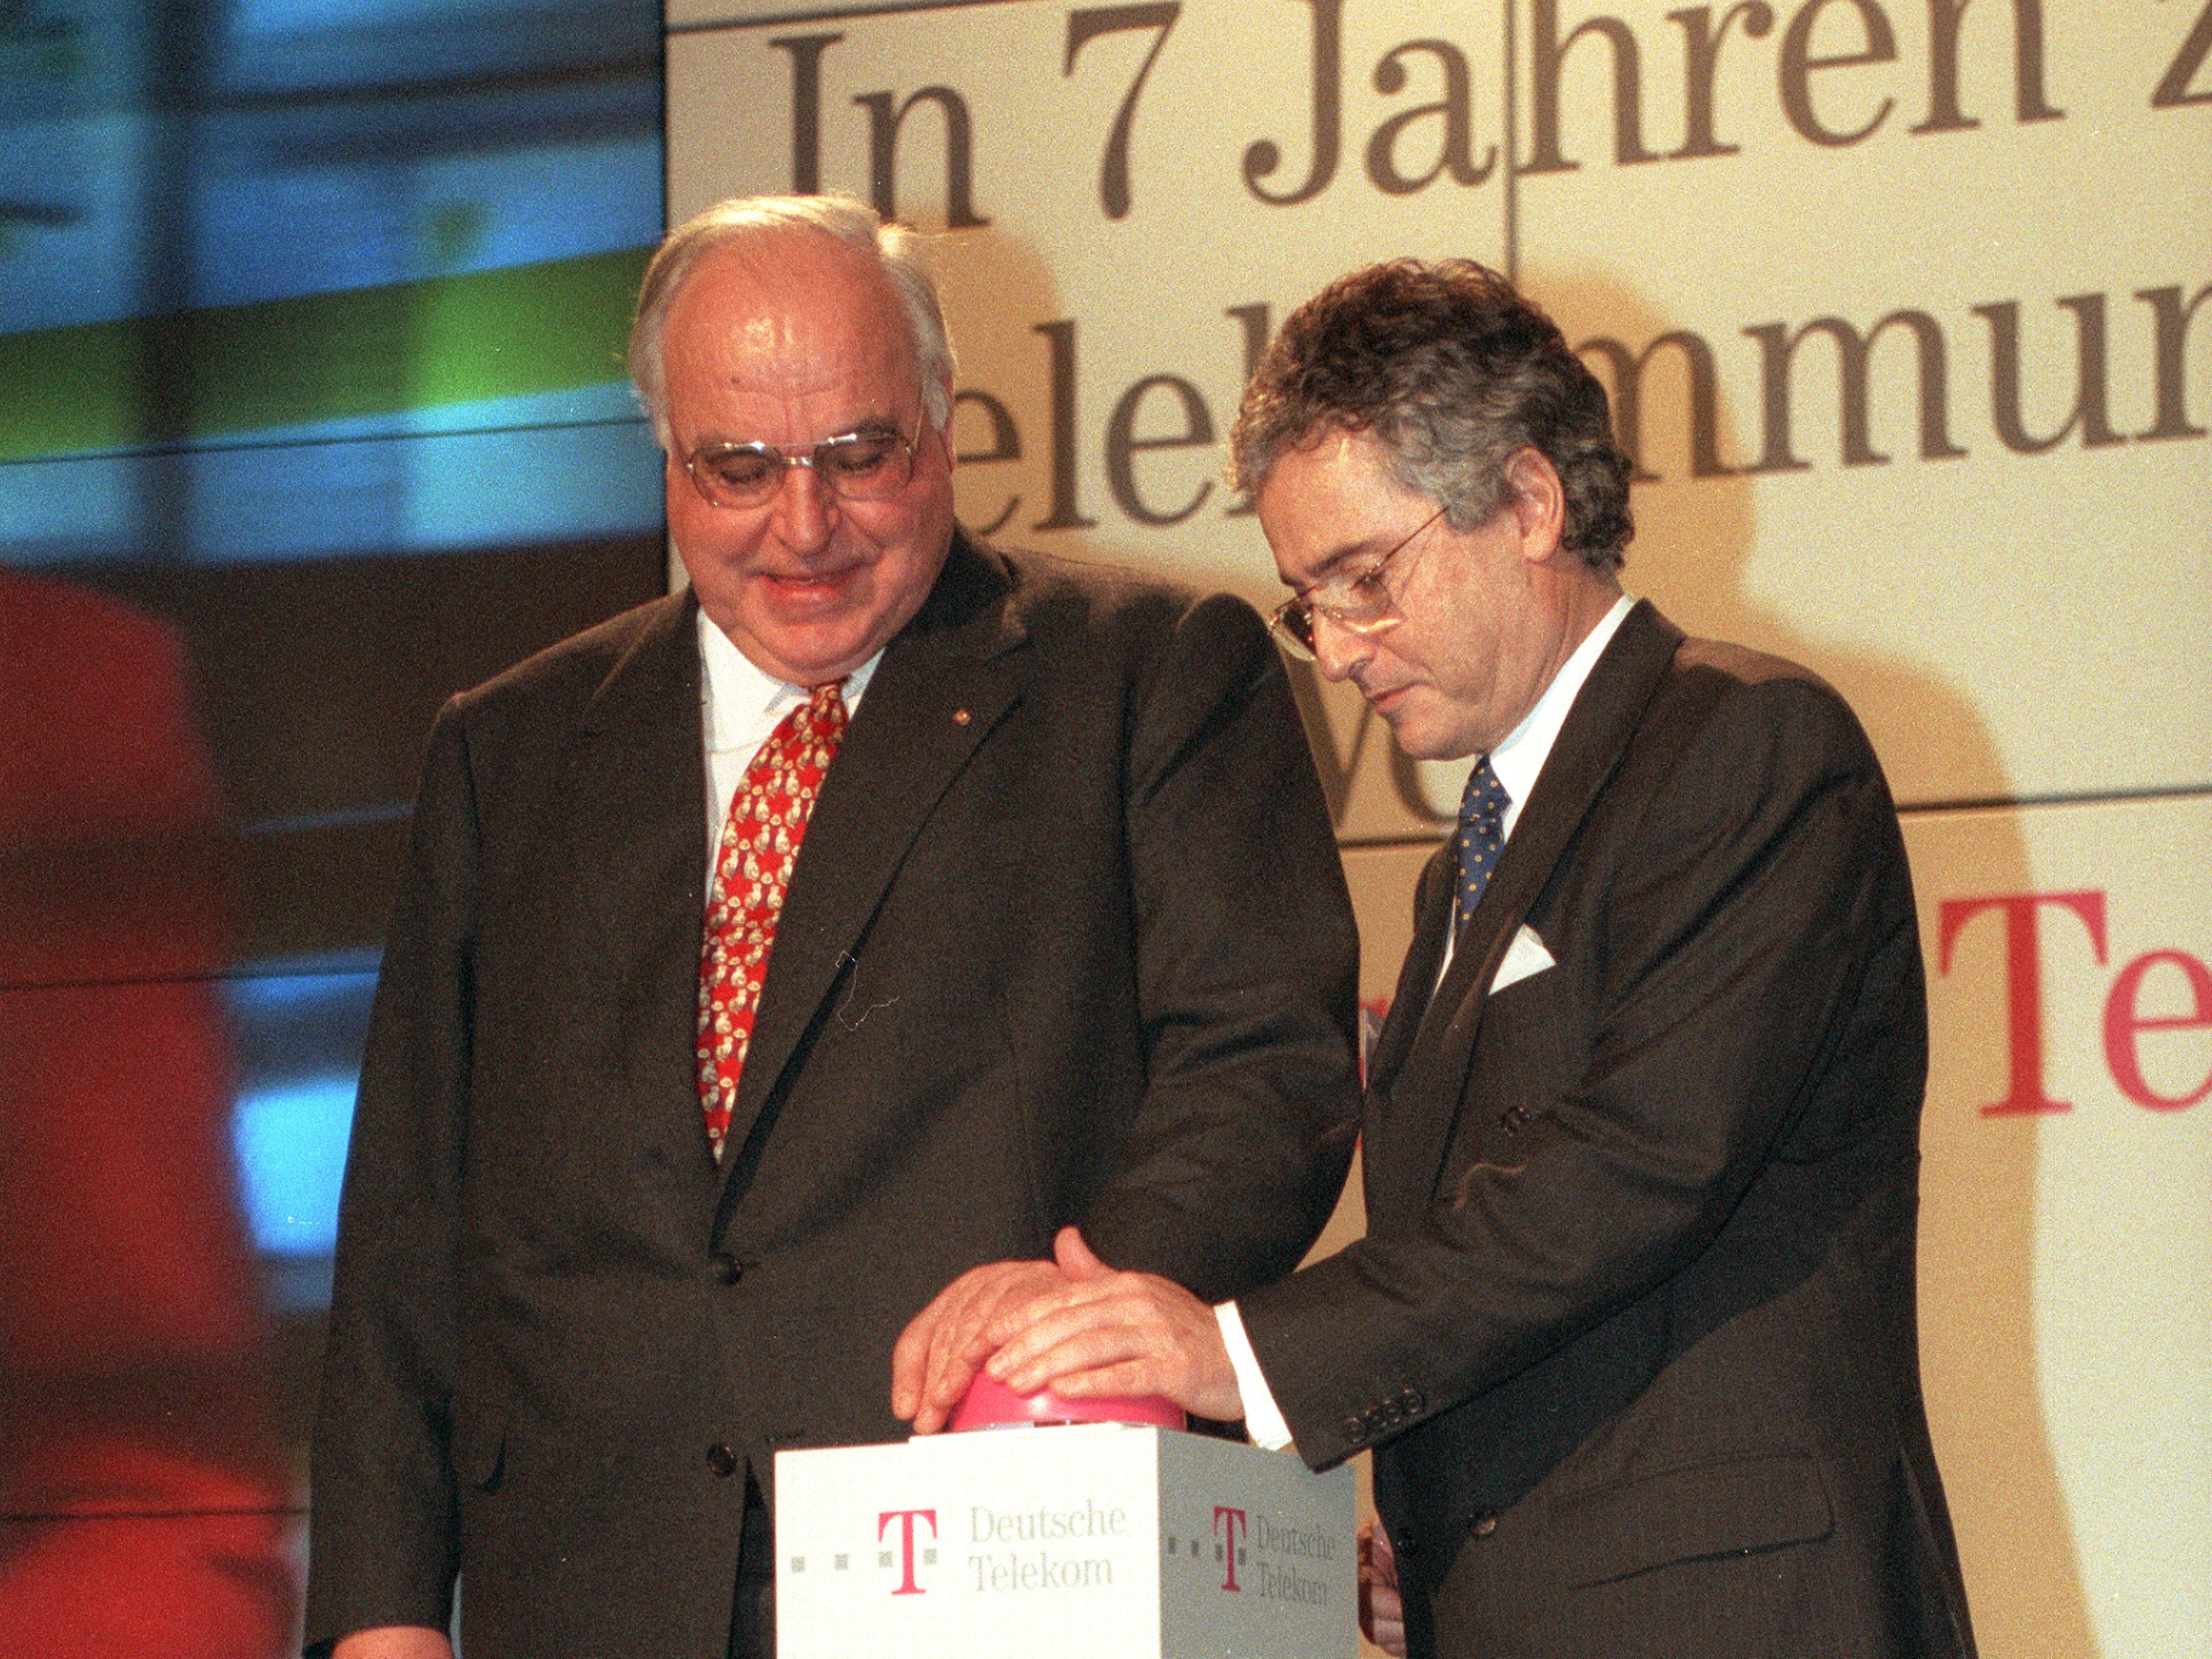 From left: Helmut Kohl and Ron Sommer.